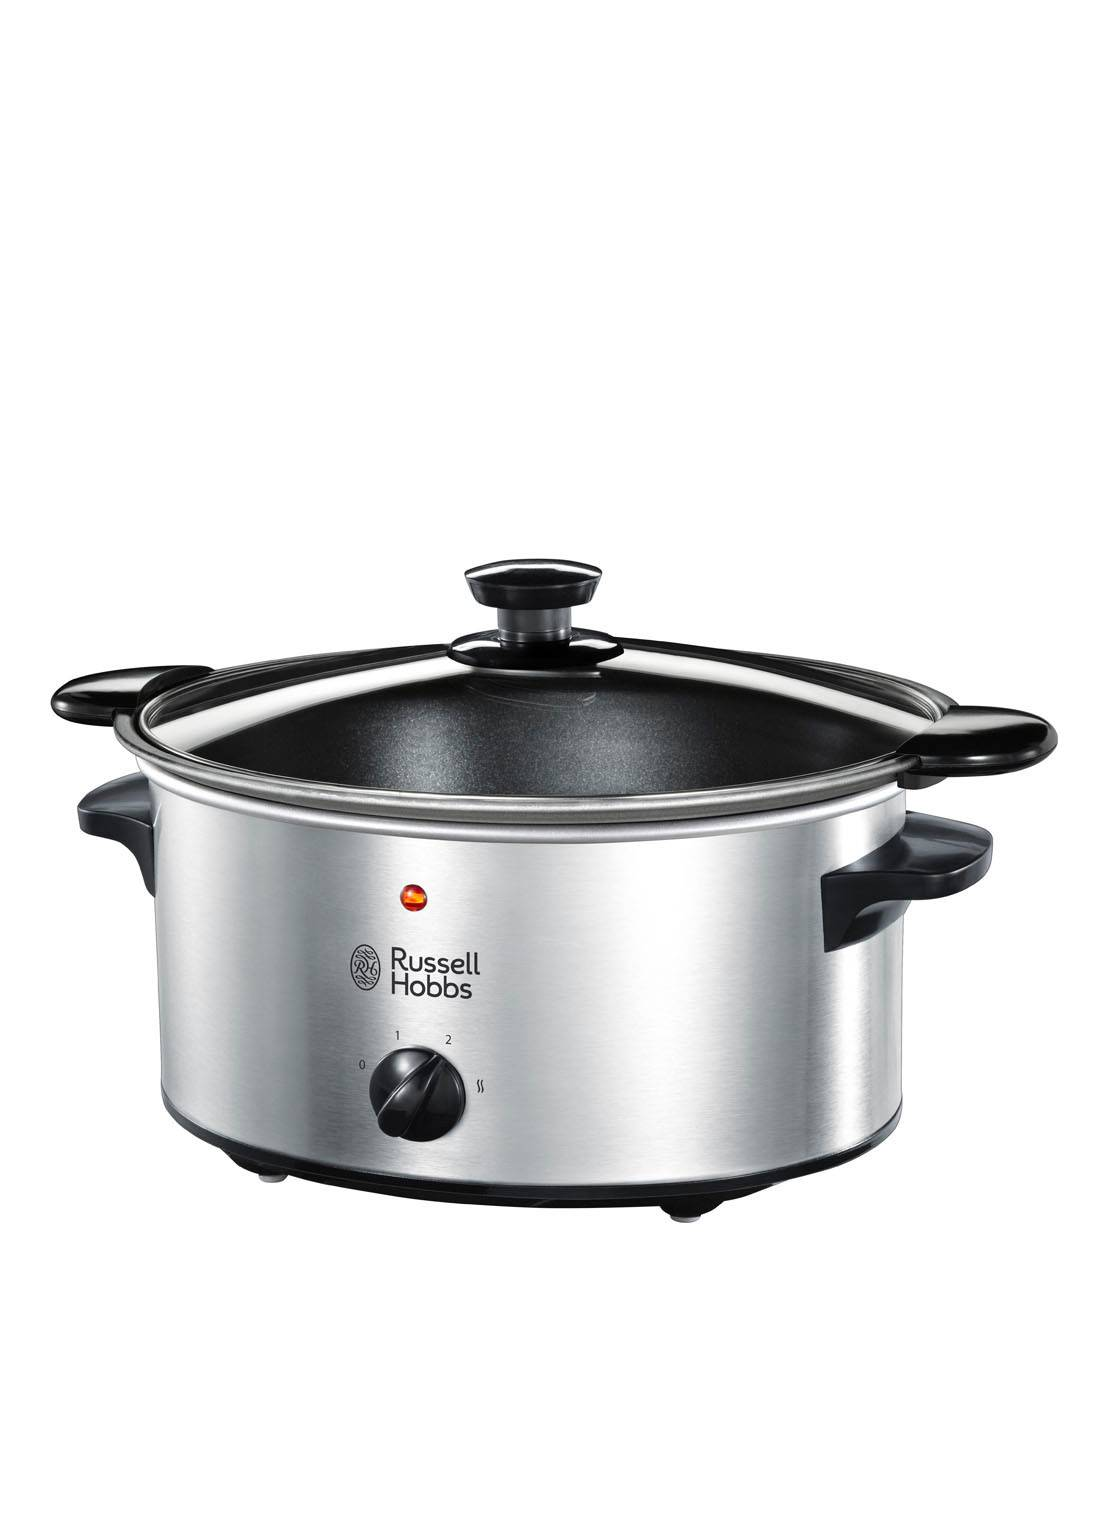 russell hobbs Cook at Home mijoteuse 3,5 litres 22740-56 - Argent